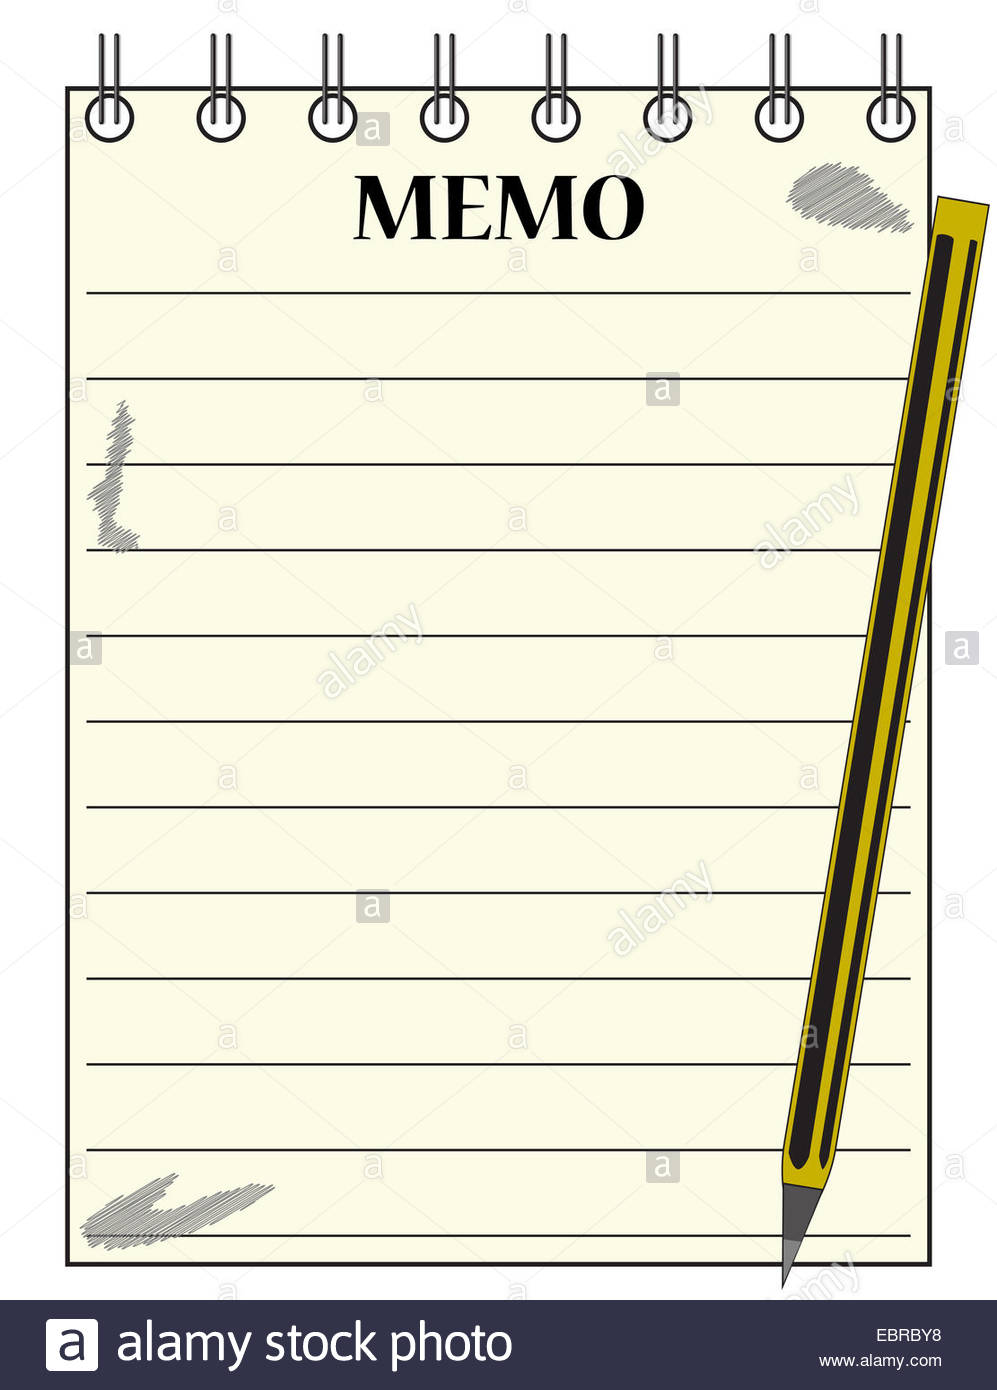 A lined memo blank notepad template or background with a pencil 997x1390